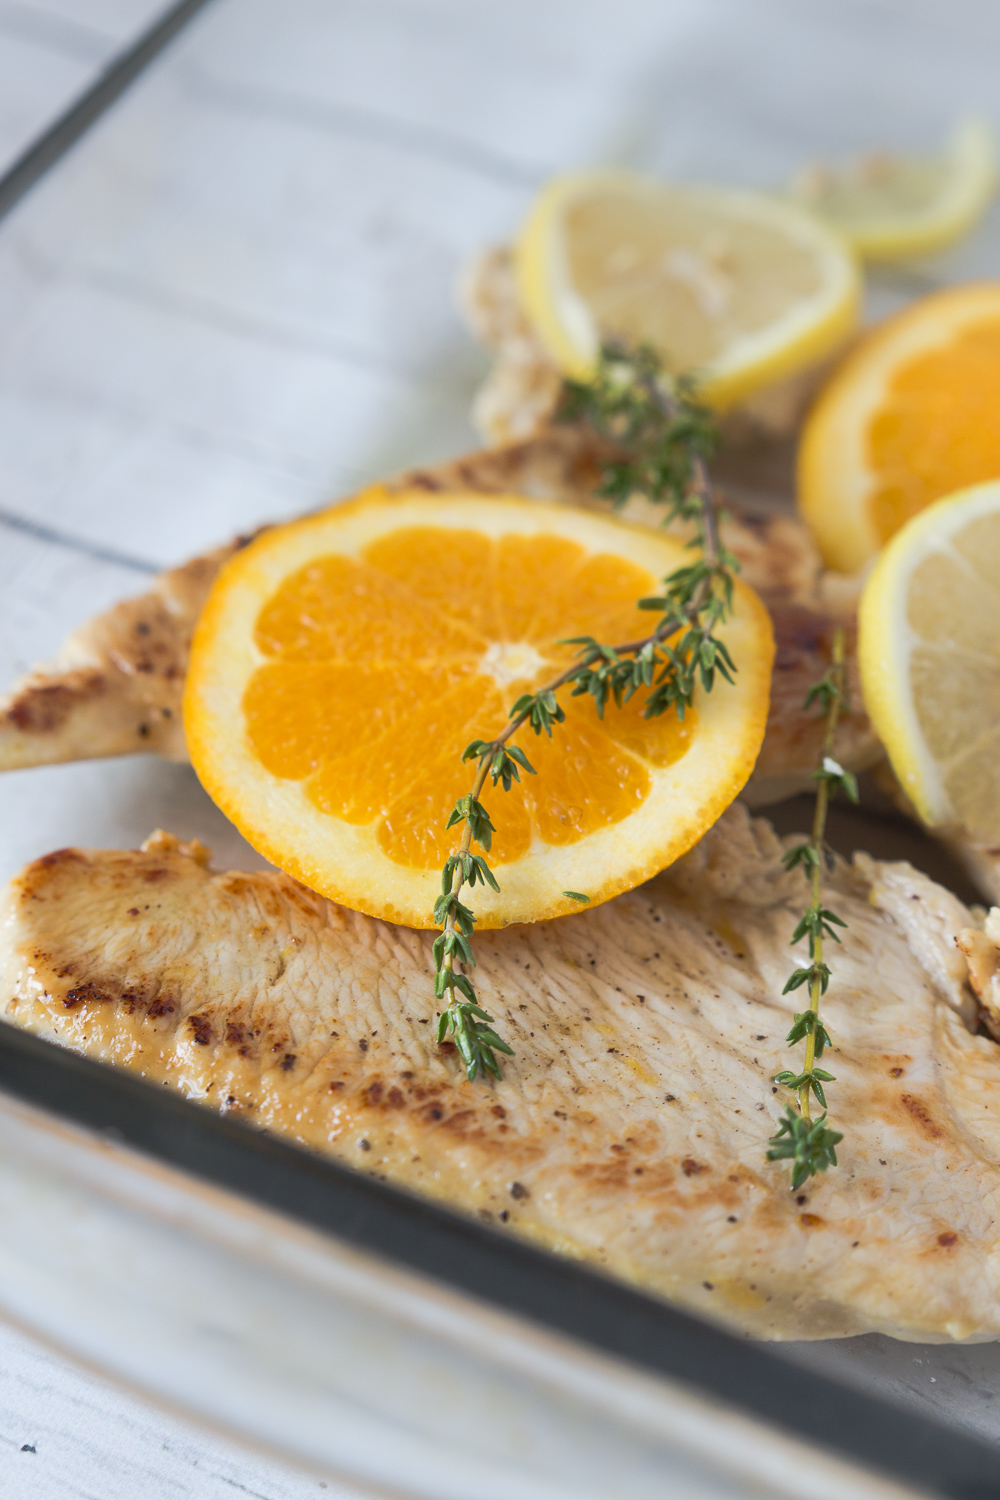 Orange & Thyme Turkey Breast Cutlets are your perfect easy weeknight dinner solution. Turkey, fresh herbs, and citrus flavors makes for a delicious dish! www.madetobeamomma.com